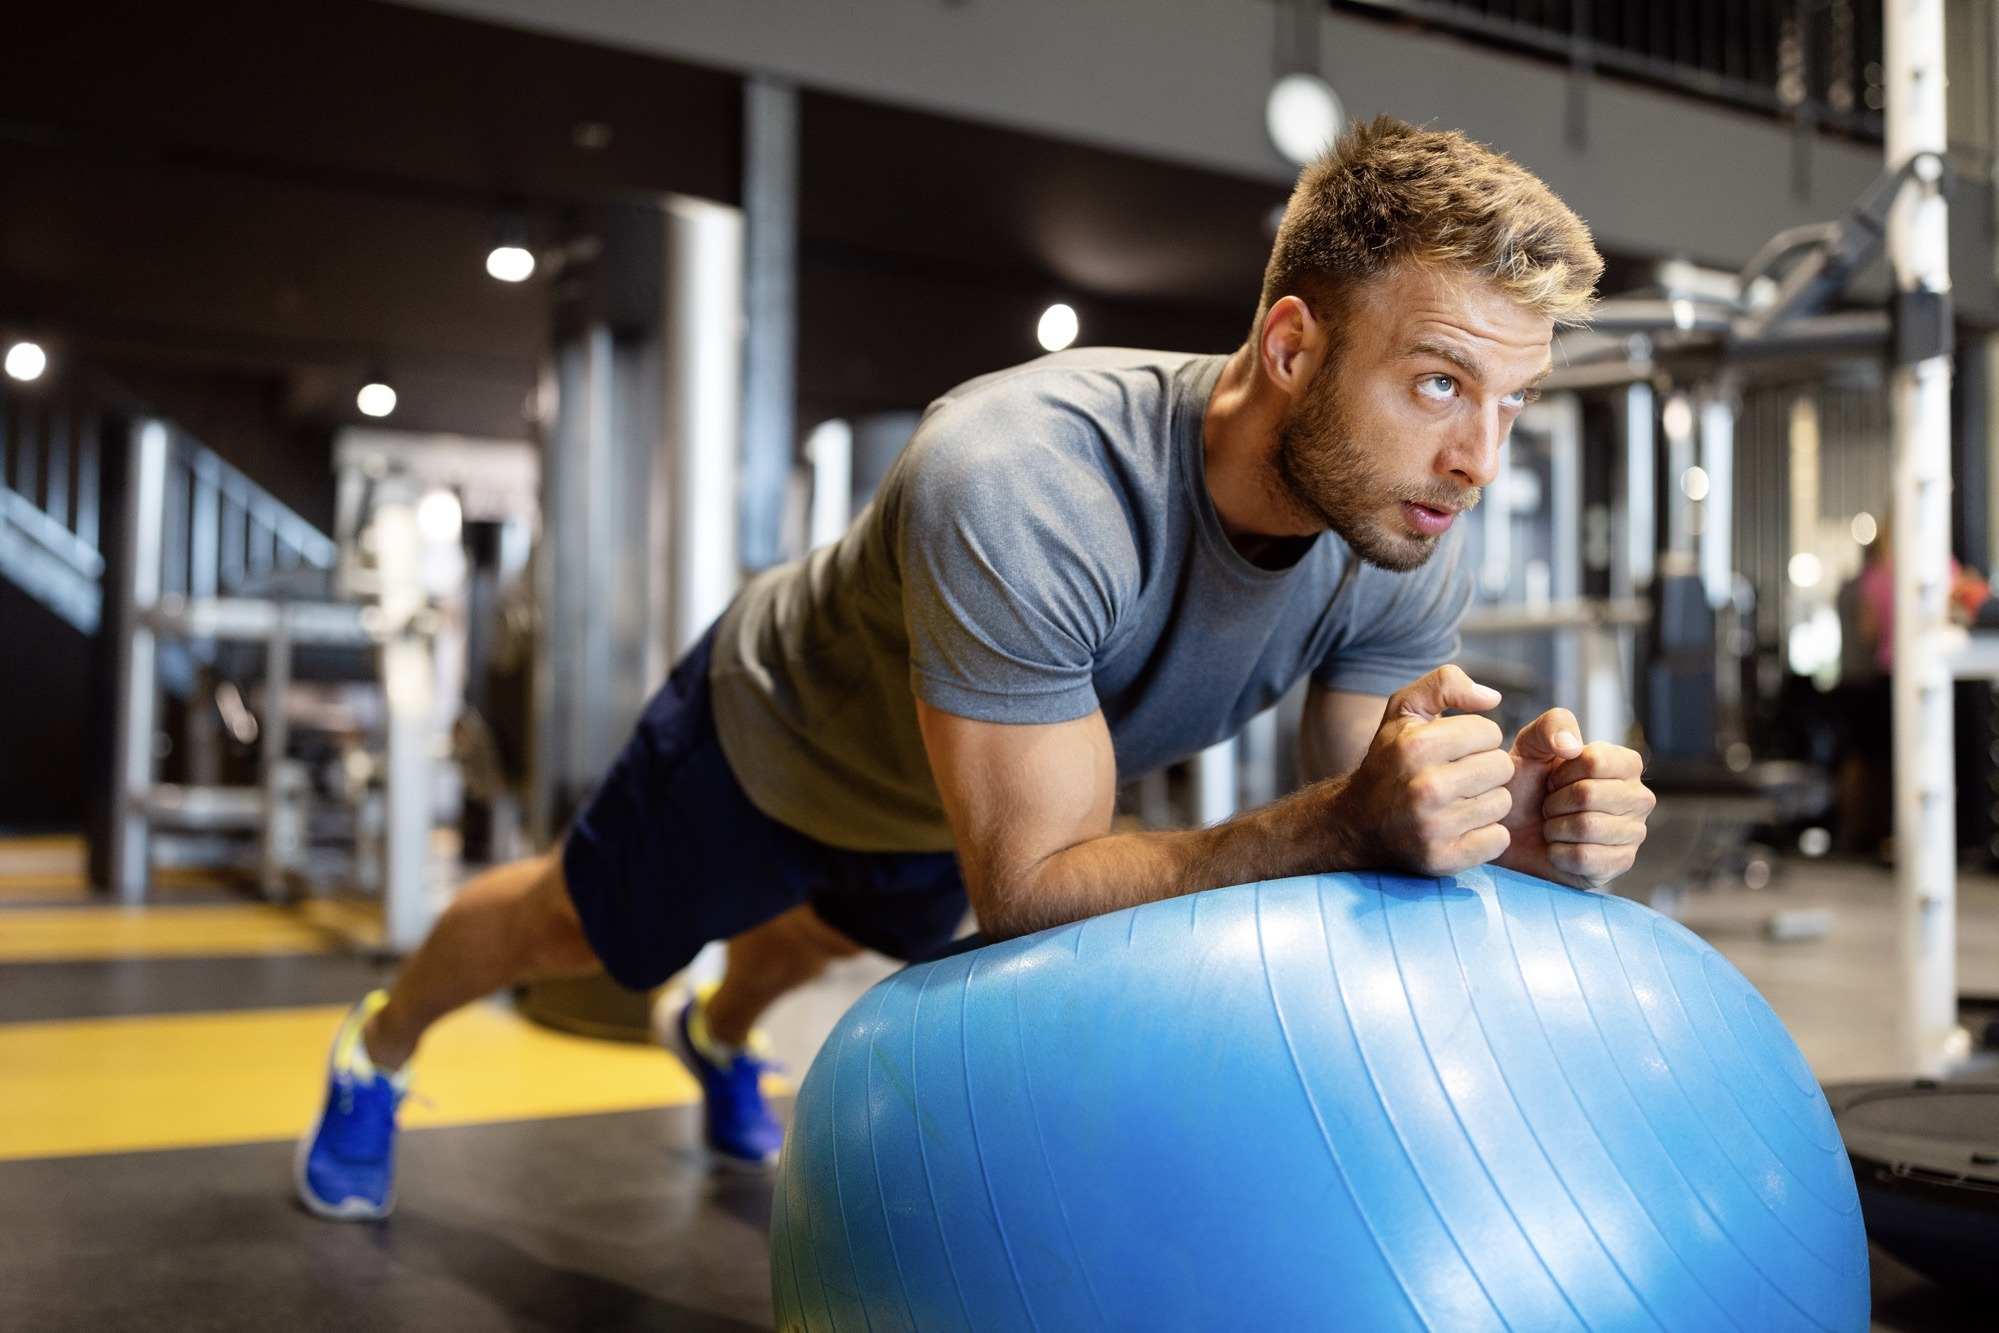 Fit man doing fitness exercise on pilates ball in gym